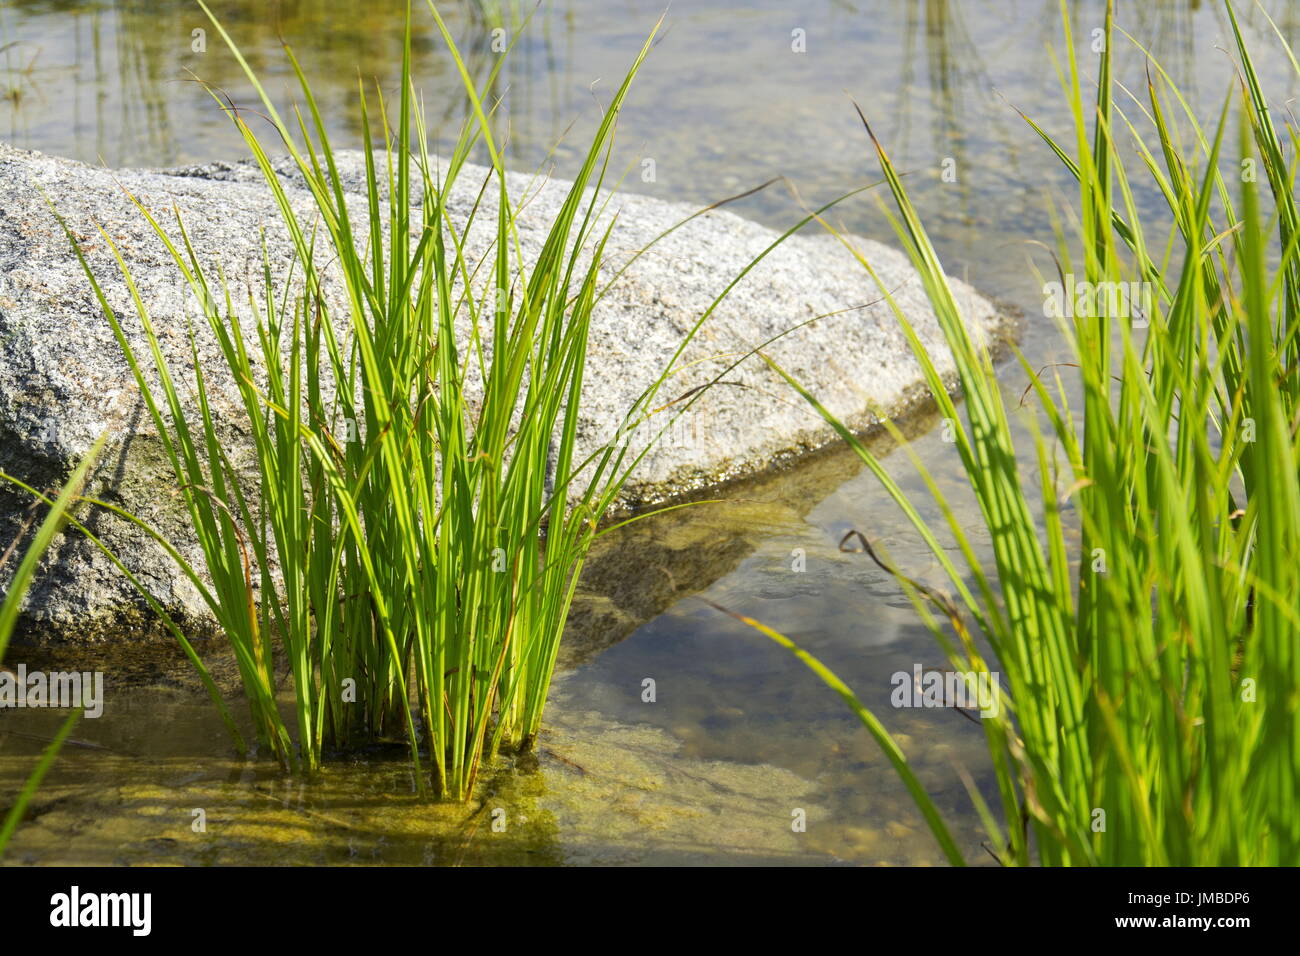 Pond liner stock photos pond liner stock images alamy for Natural pond plants